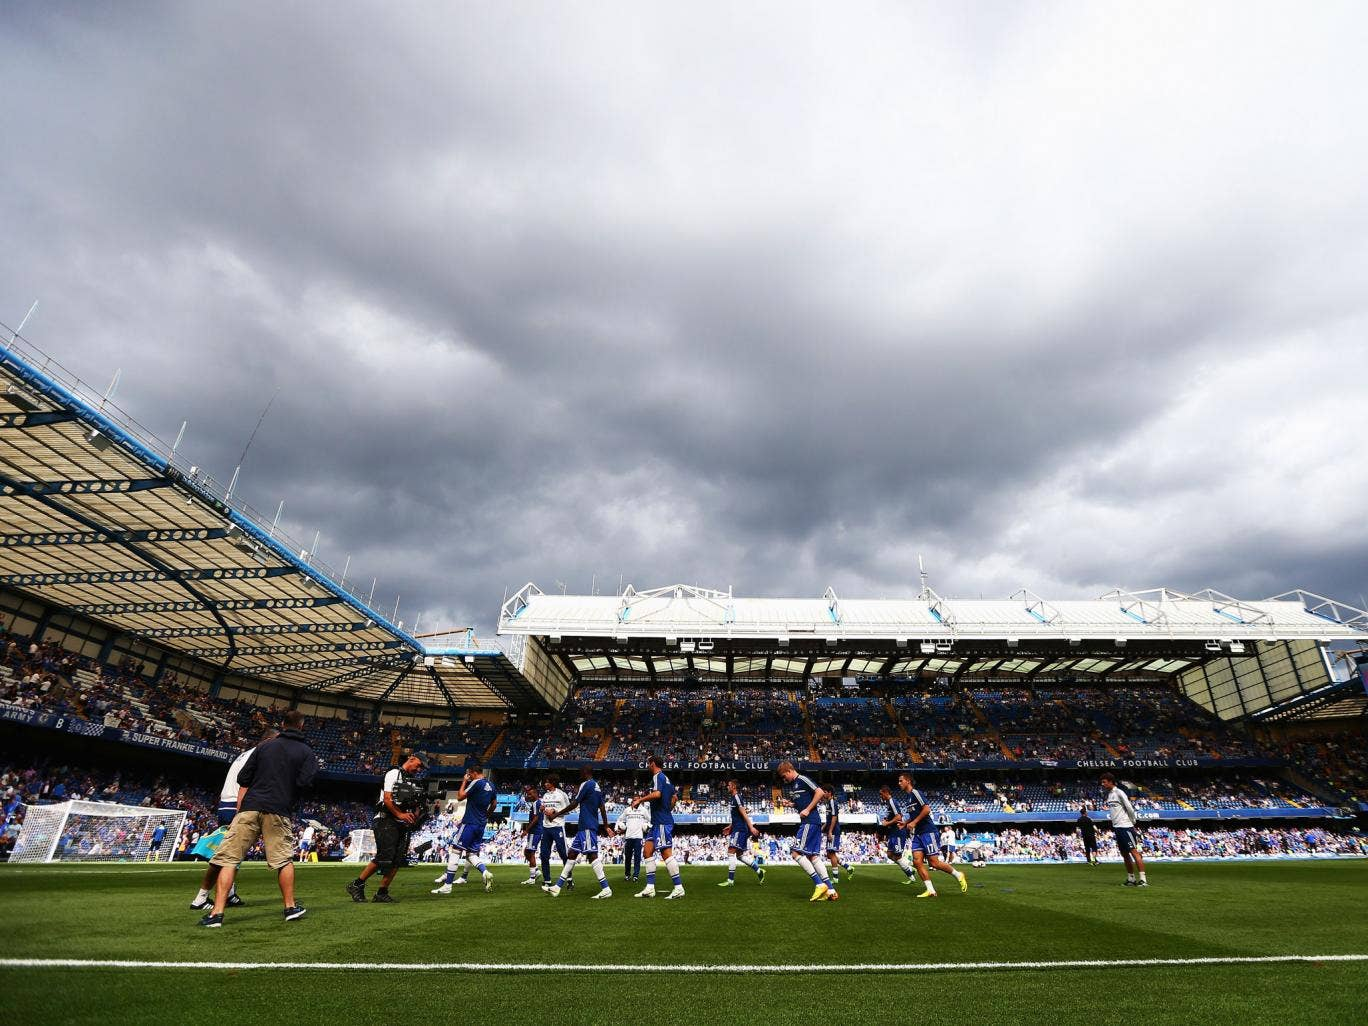 To build a new 60,000-capacity ground on the site of Stamford Bridge would cost more than £600m